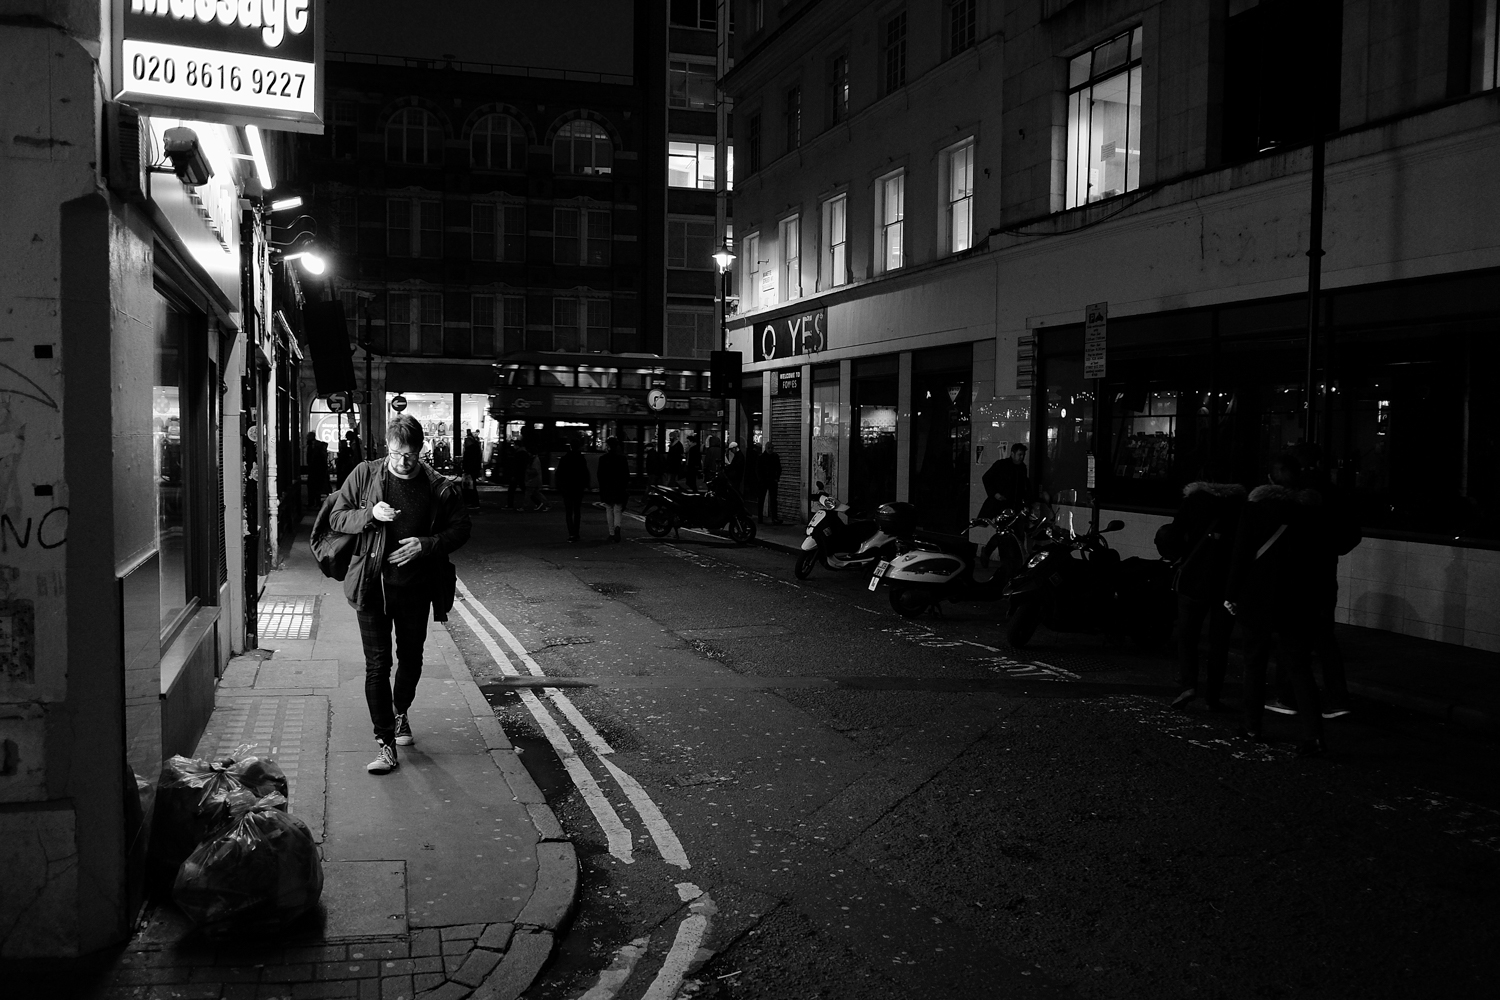 Fujifilm X-T1 jpeg file of a darkly light London street scene